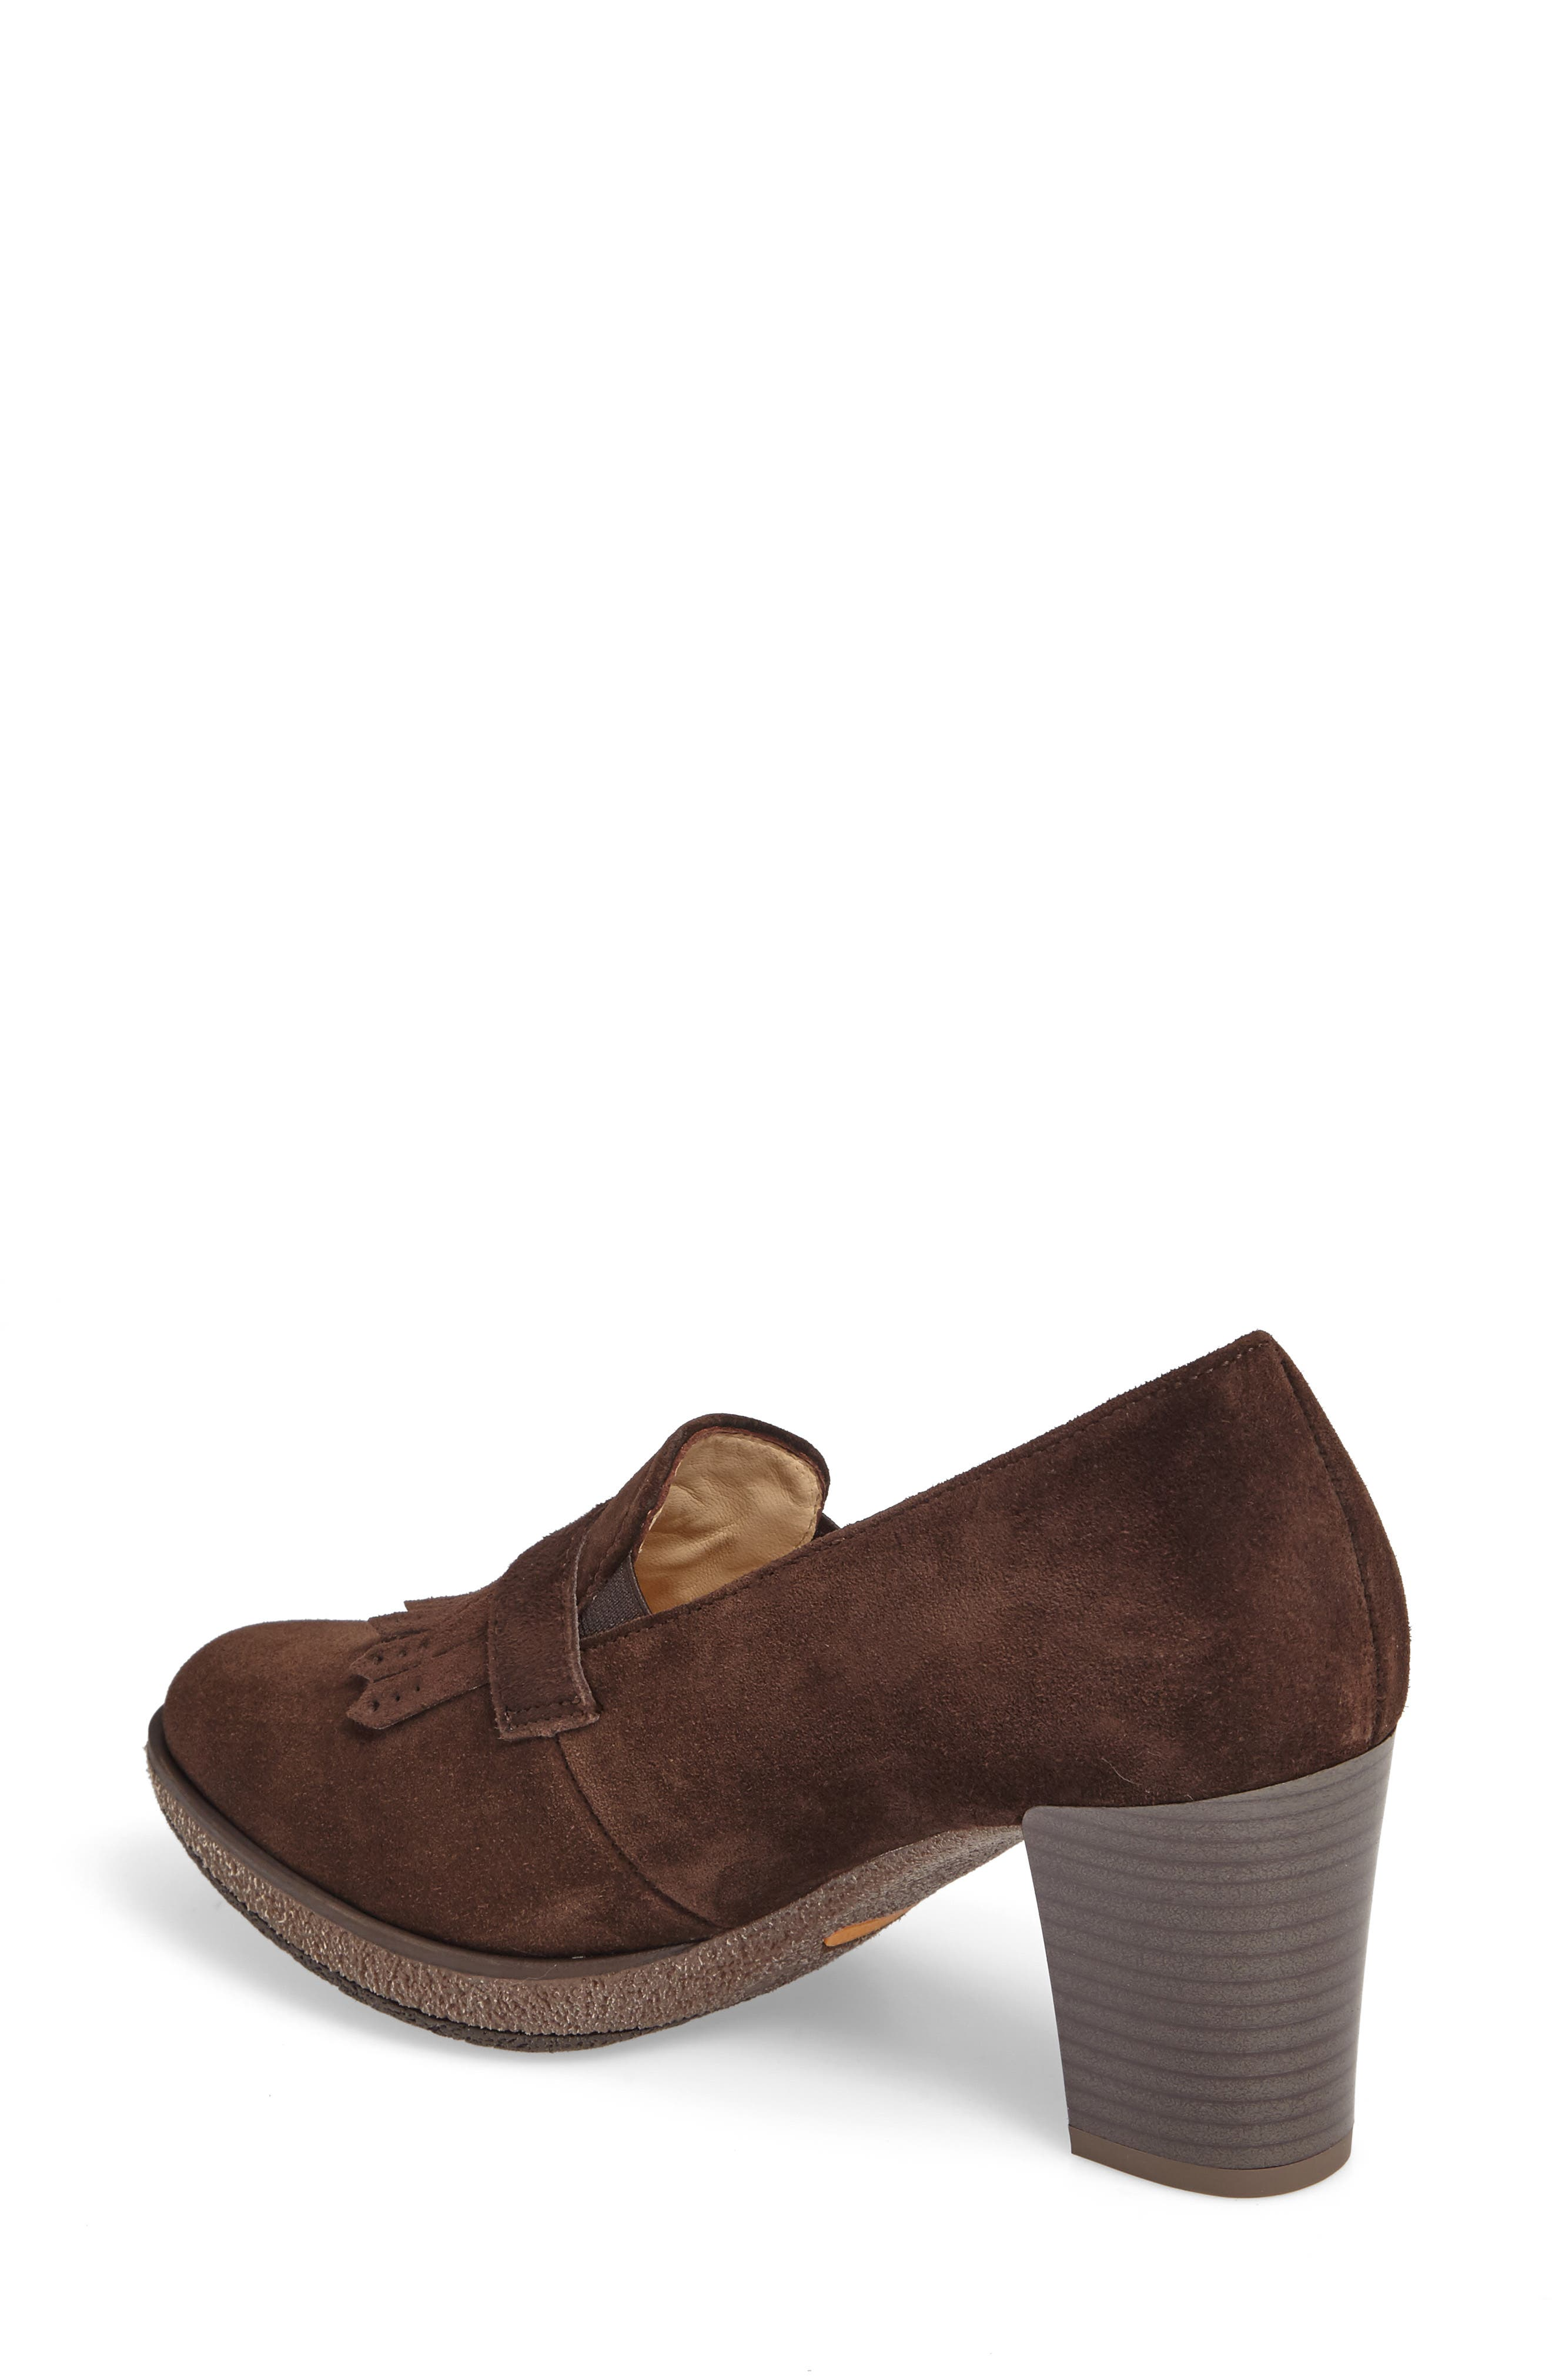 Becky Loafer Pump,                             Alternate thumbnail 2, color,                             BROWN SUEDE